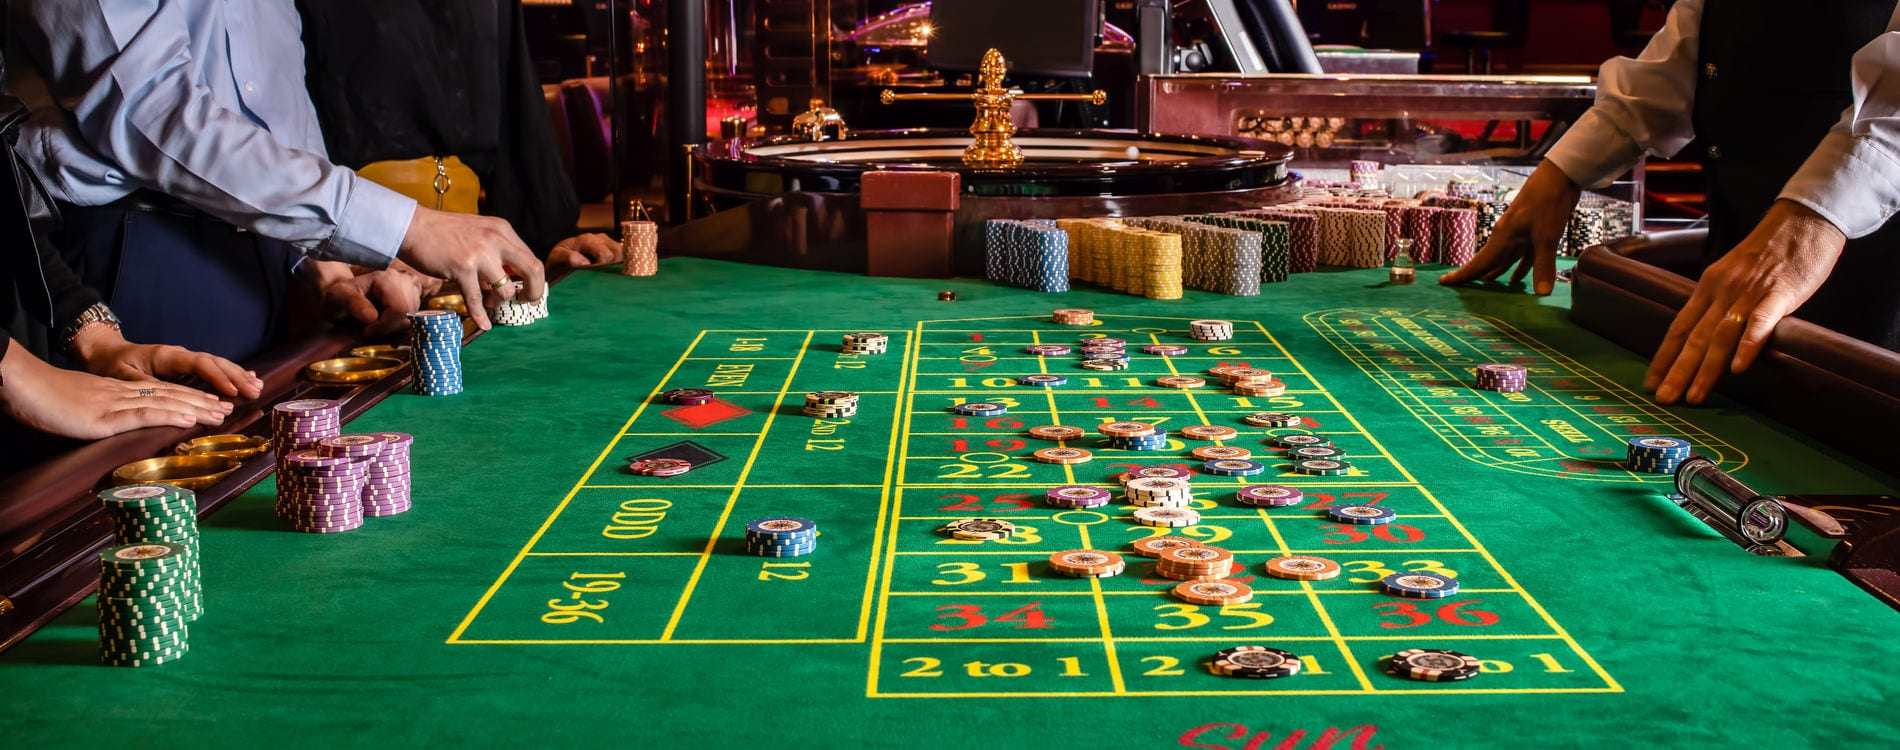 Roulette table in casino